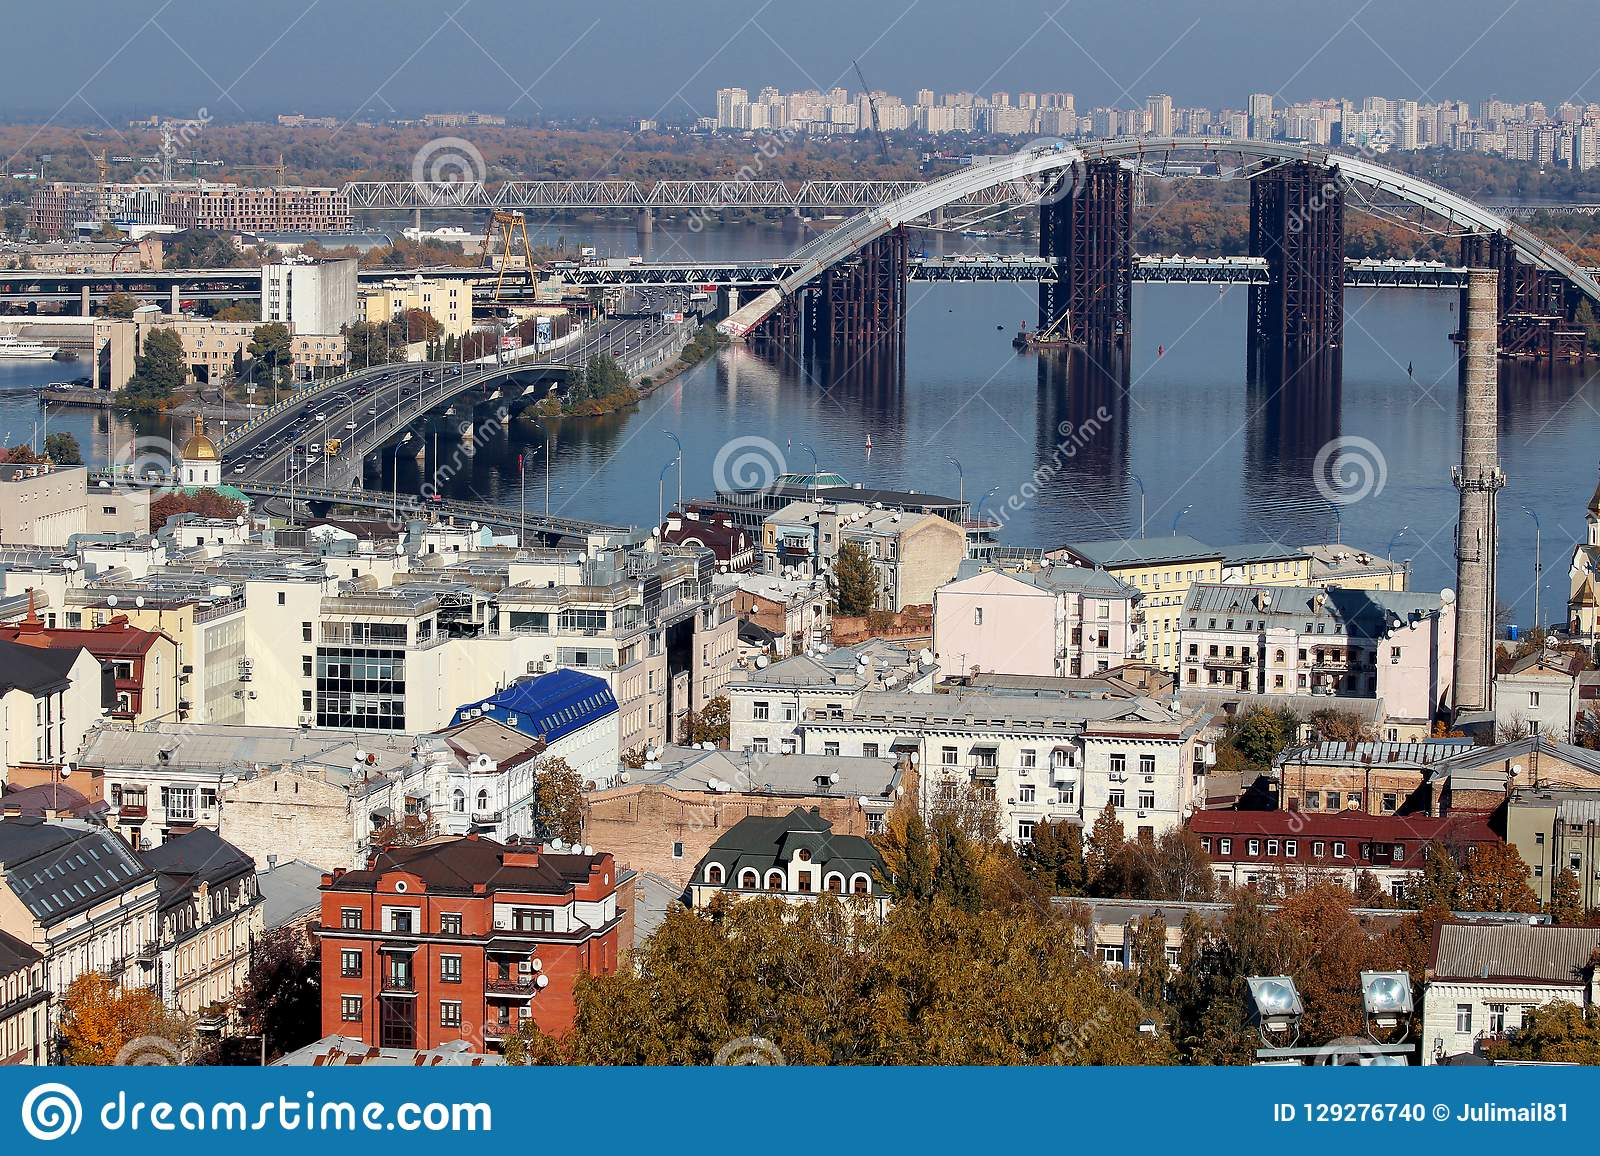 The bridge, which is being repaired, is on the other side of the city. Trees and architecture.Podol, Kiev. Ukraine.